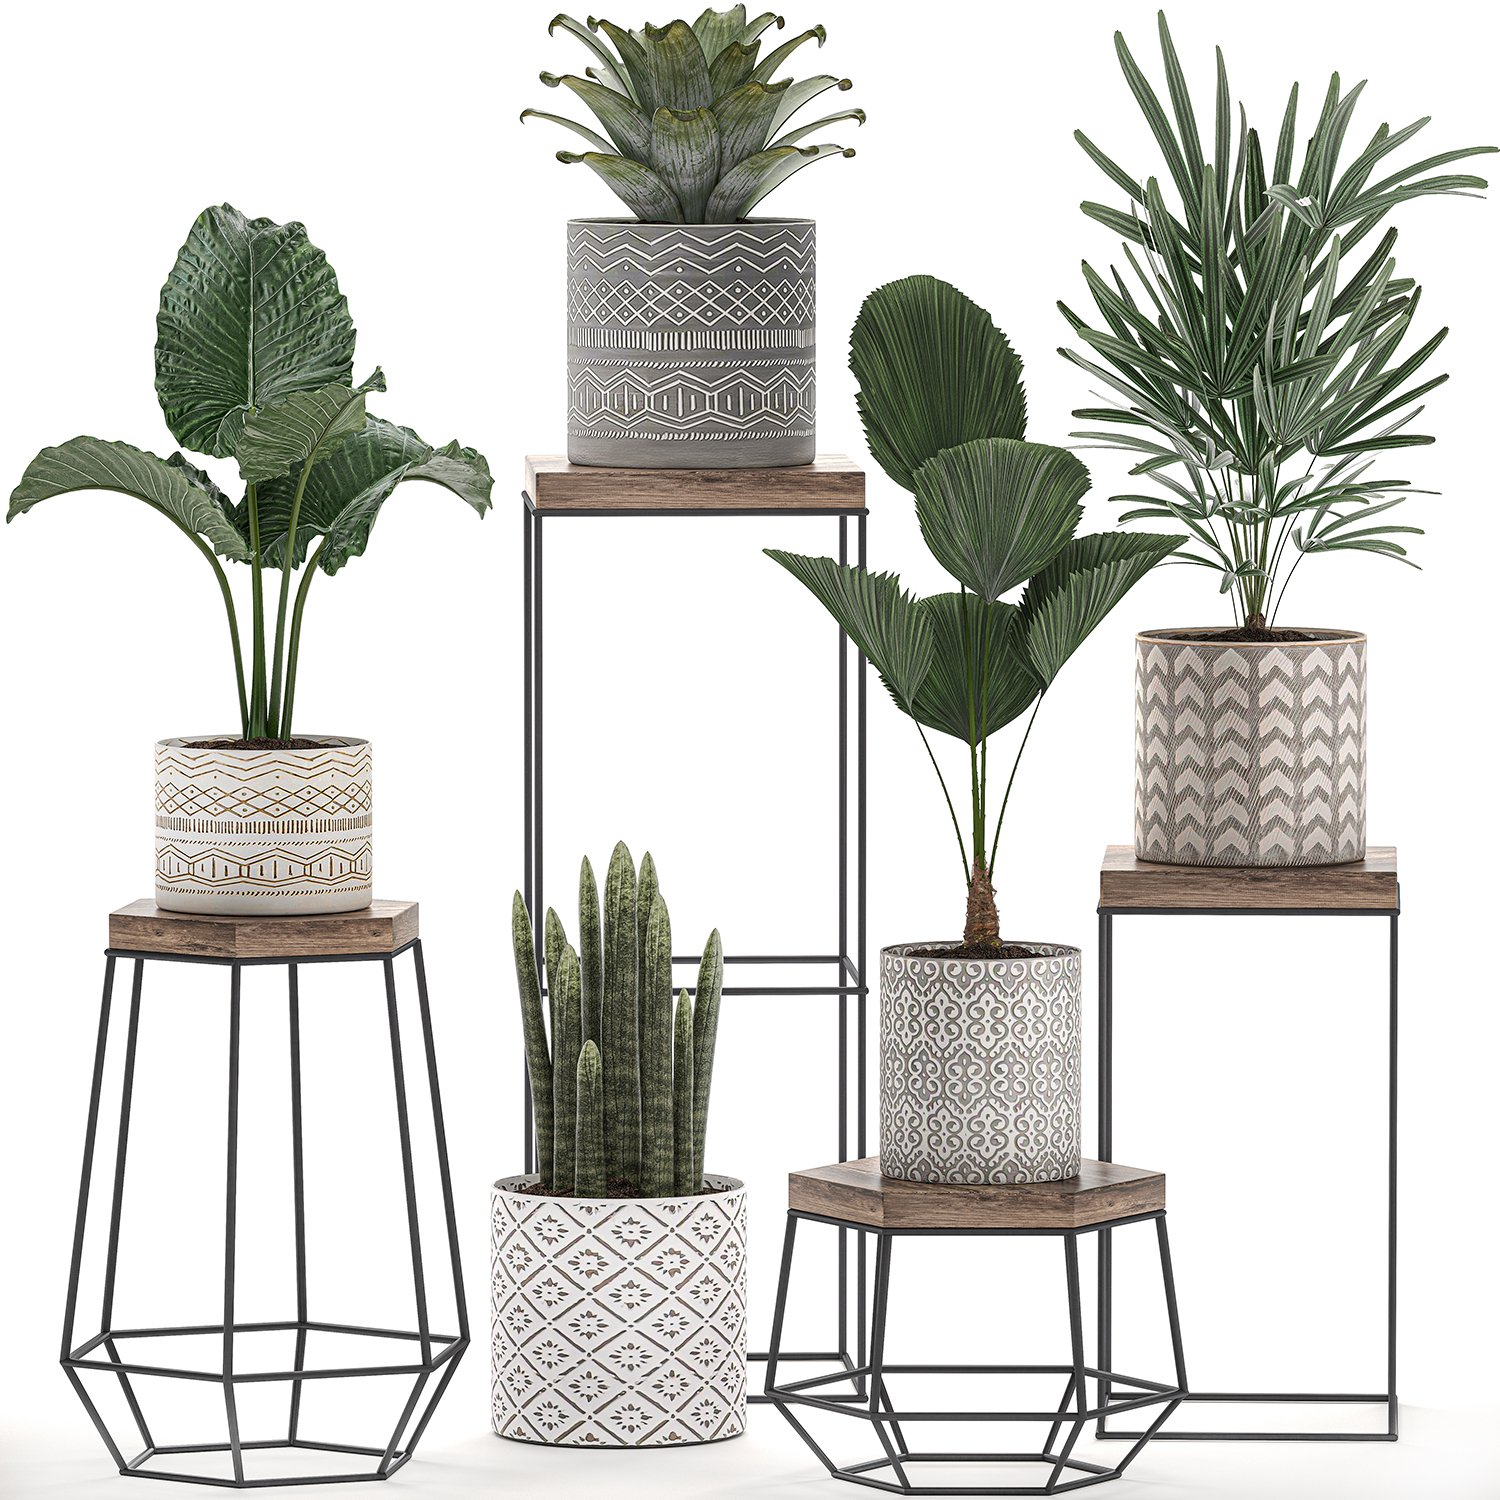 Decorative Plants In Pots On A Stand For The Interior 528 3d Model In